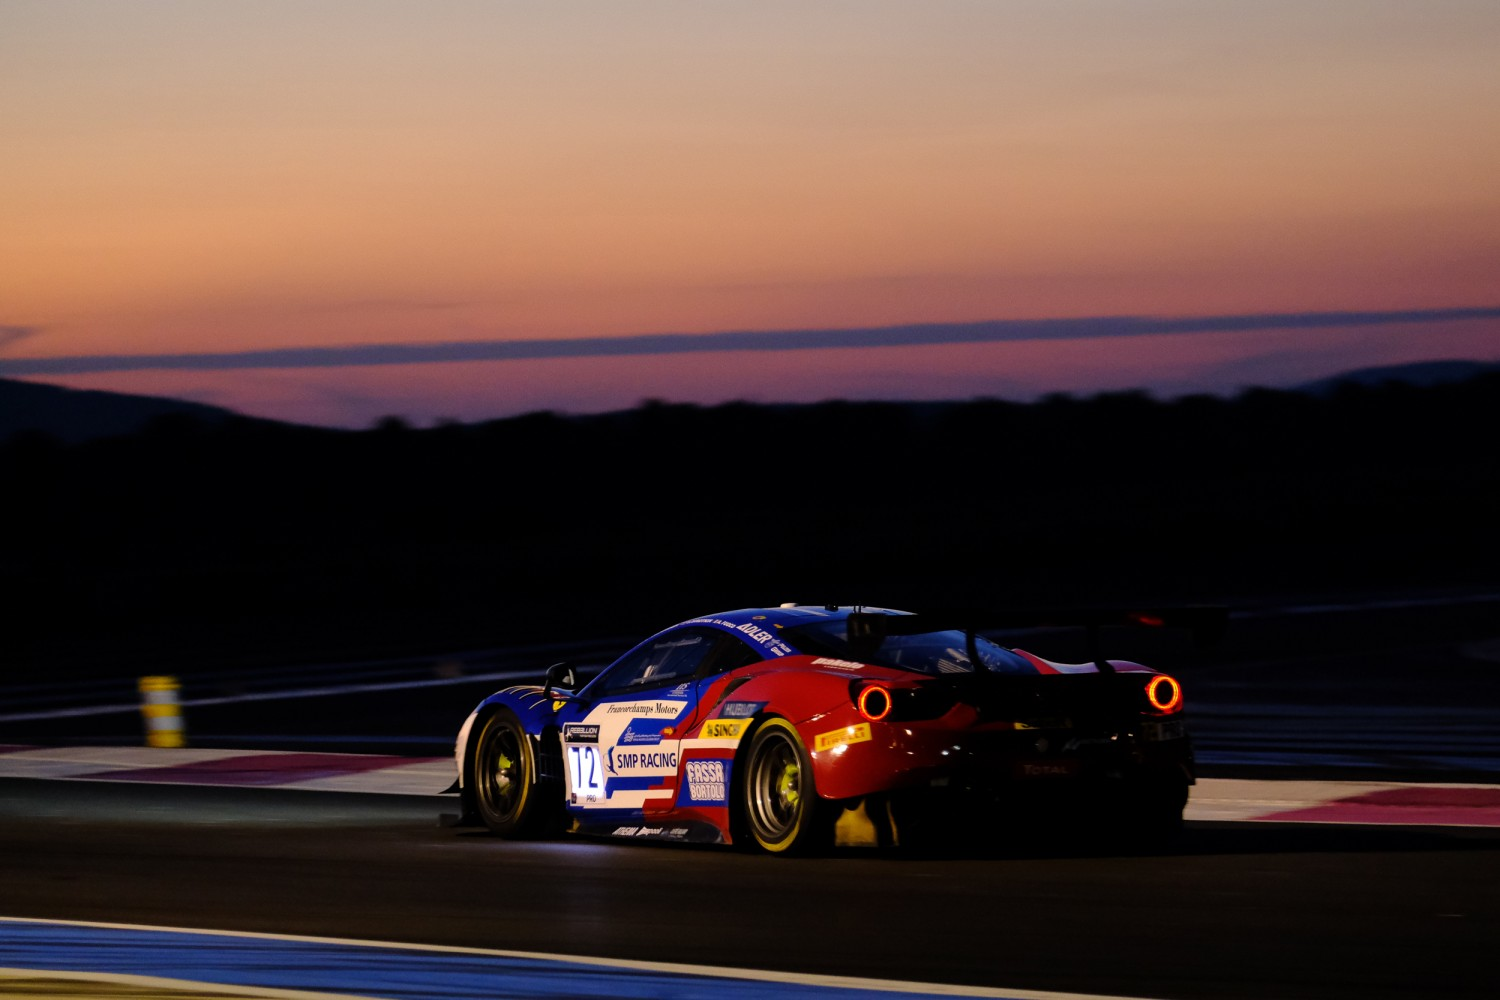 SMP Racing defeats AF Corse to secure Ferrari one-two in Circuit Paul Ricard 1000km qualifying